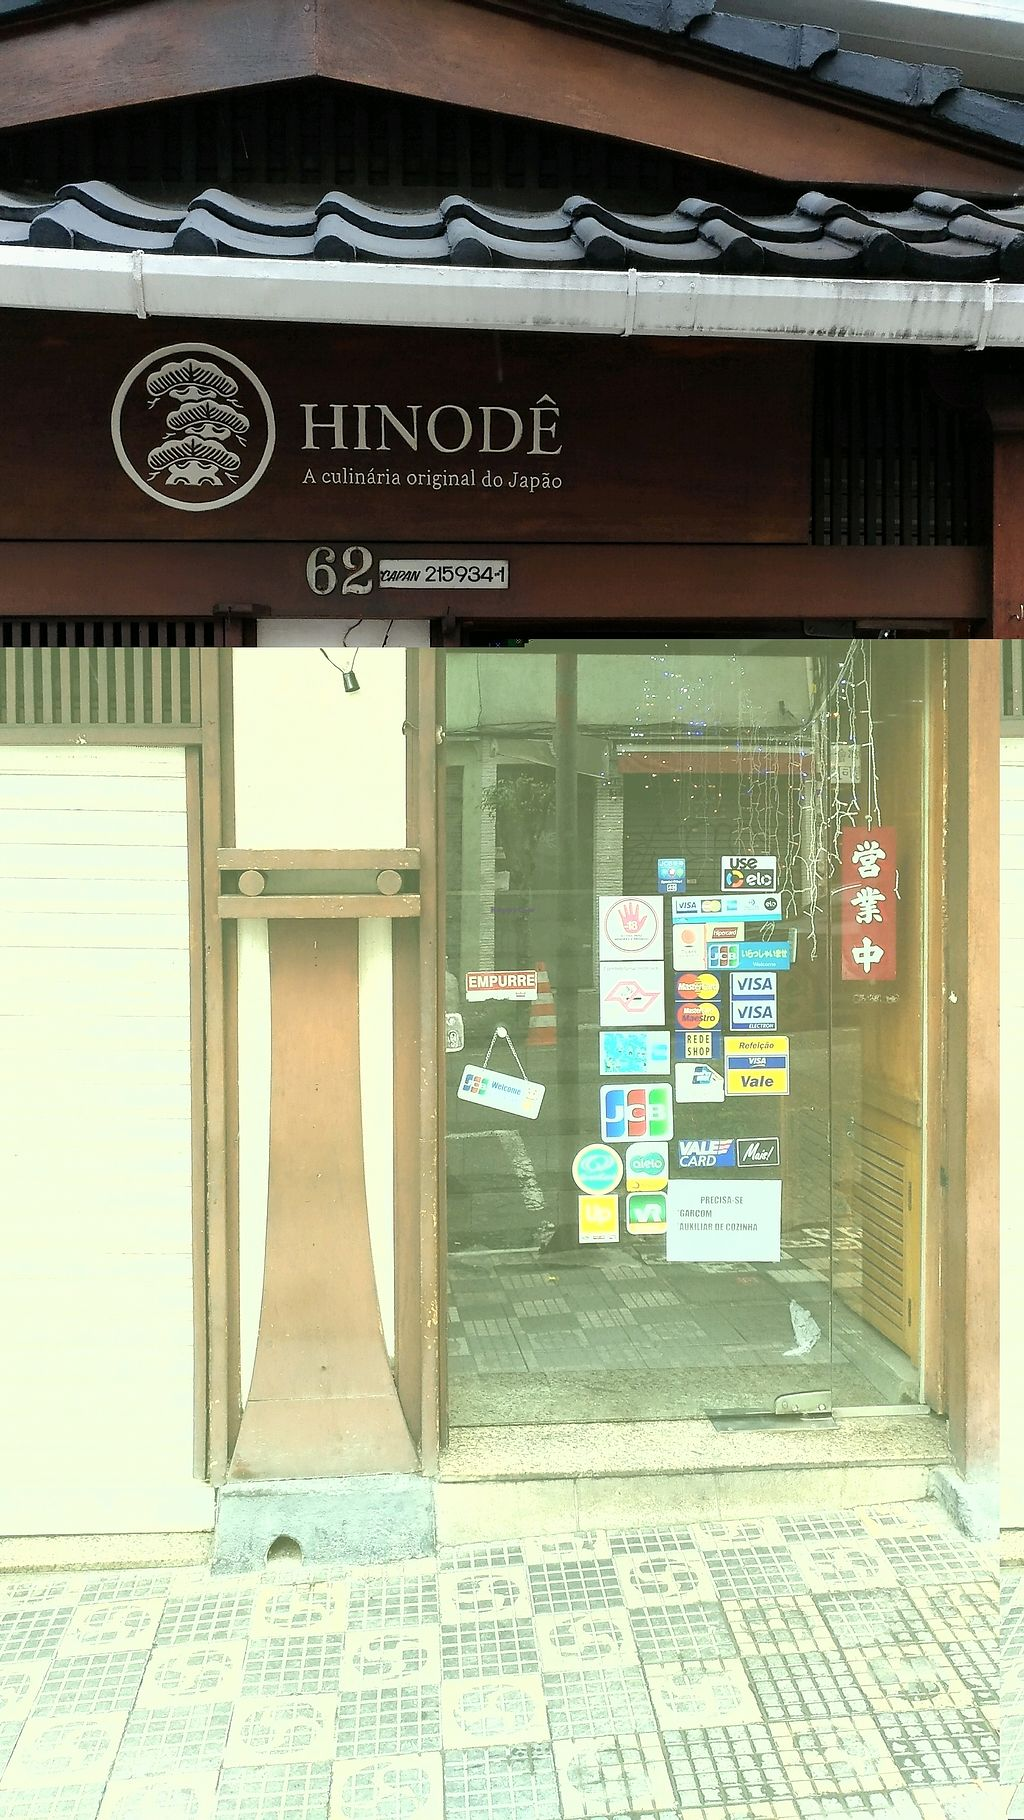 "Photo of Hinode  by <a href=""/members/profile/GabrielCMarquesB"">GabrielCMarquesB</a> <br/>entrance <br/> January 7, 2018  - <a href='/contact/abuse/image/108903/344034'>Report</a>"